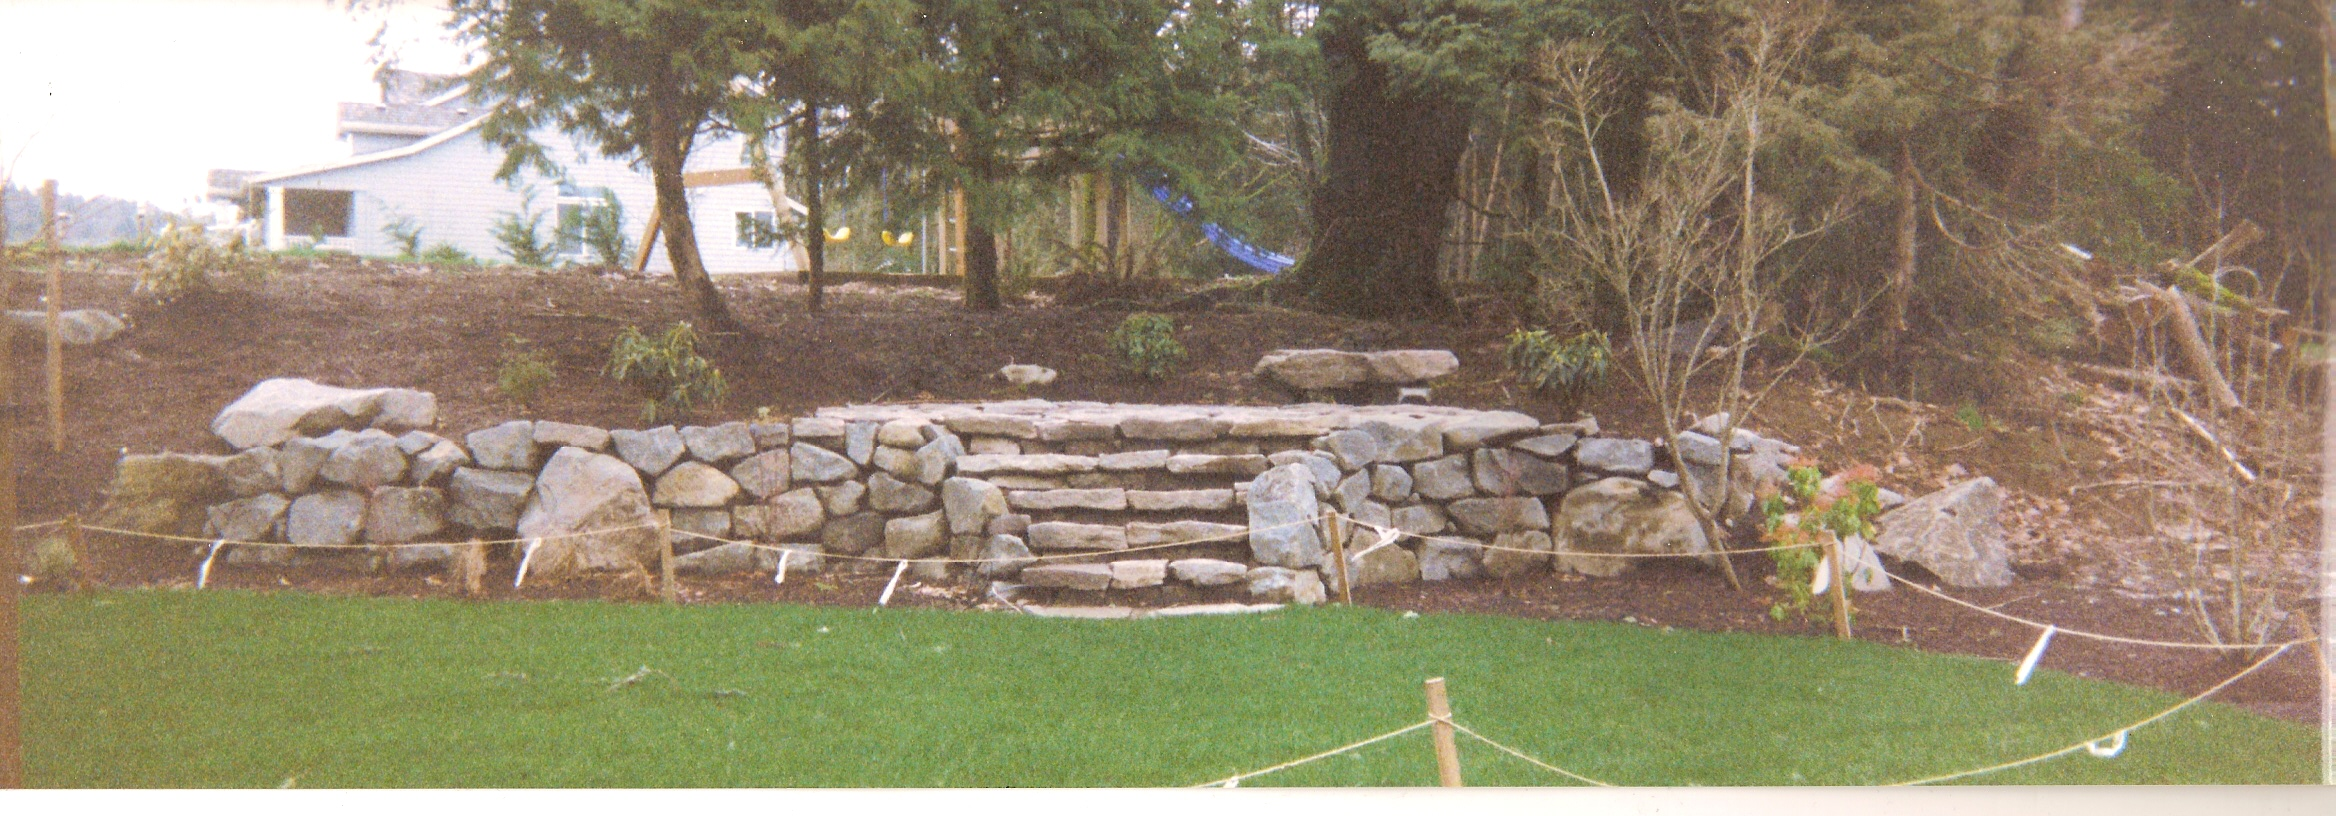 garden design with rocksboulders steve snedekerus landscaping and gardening blog with landscape backyard from - Garden Design Using Rocks